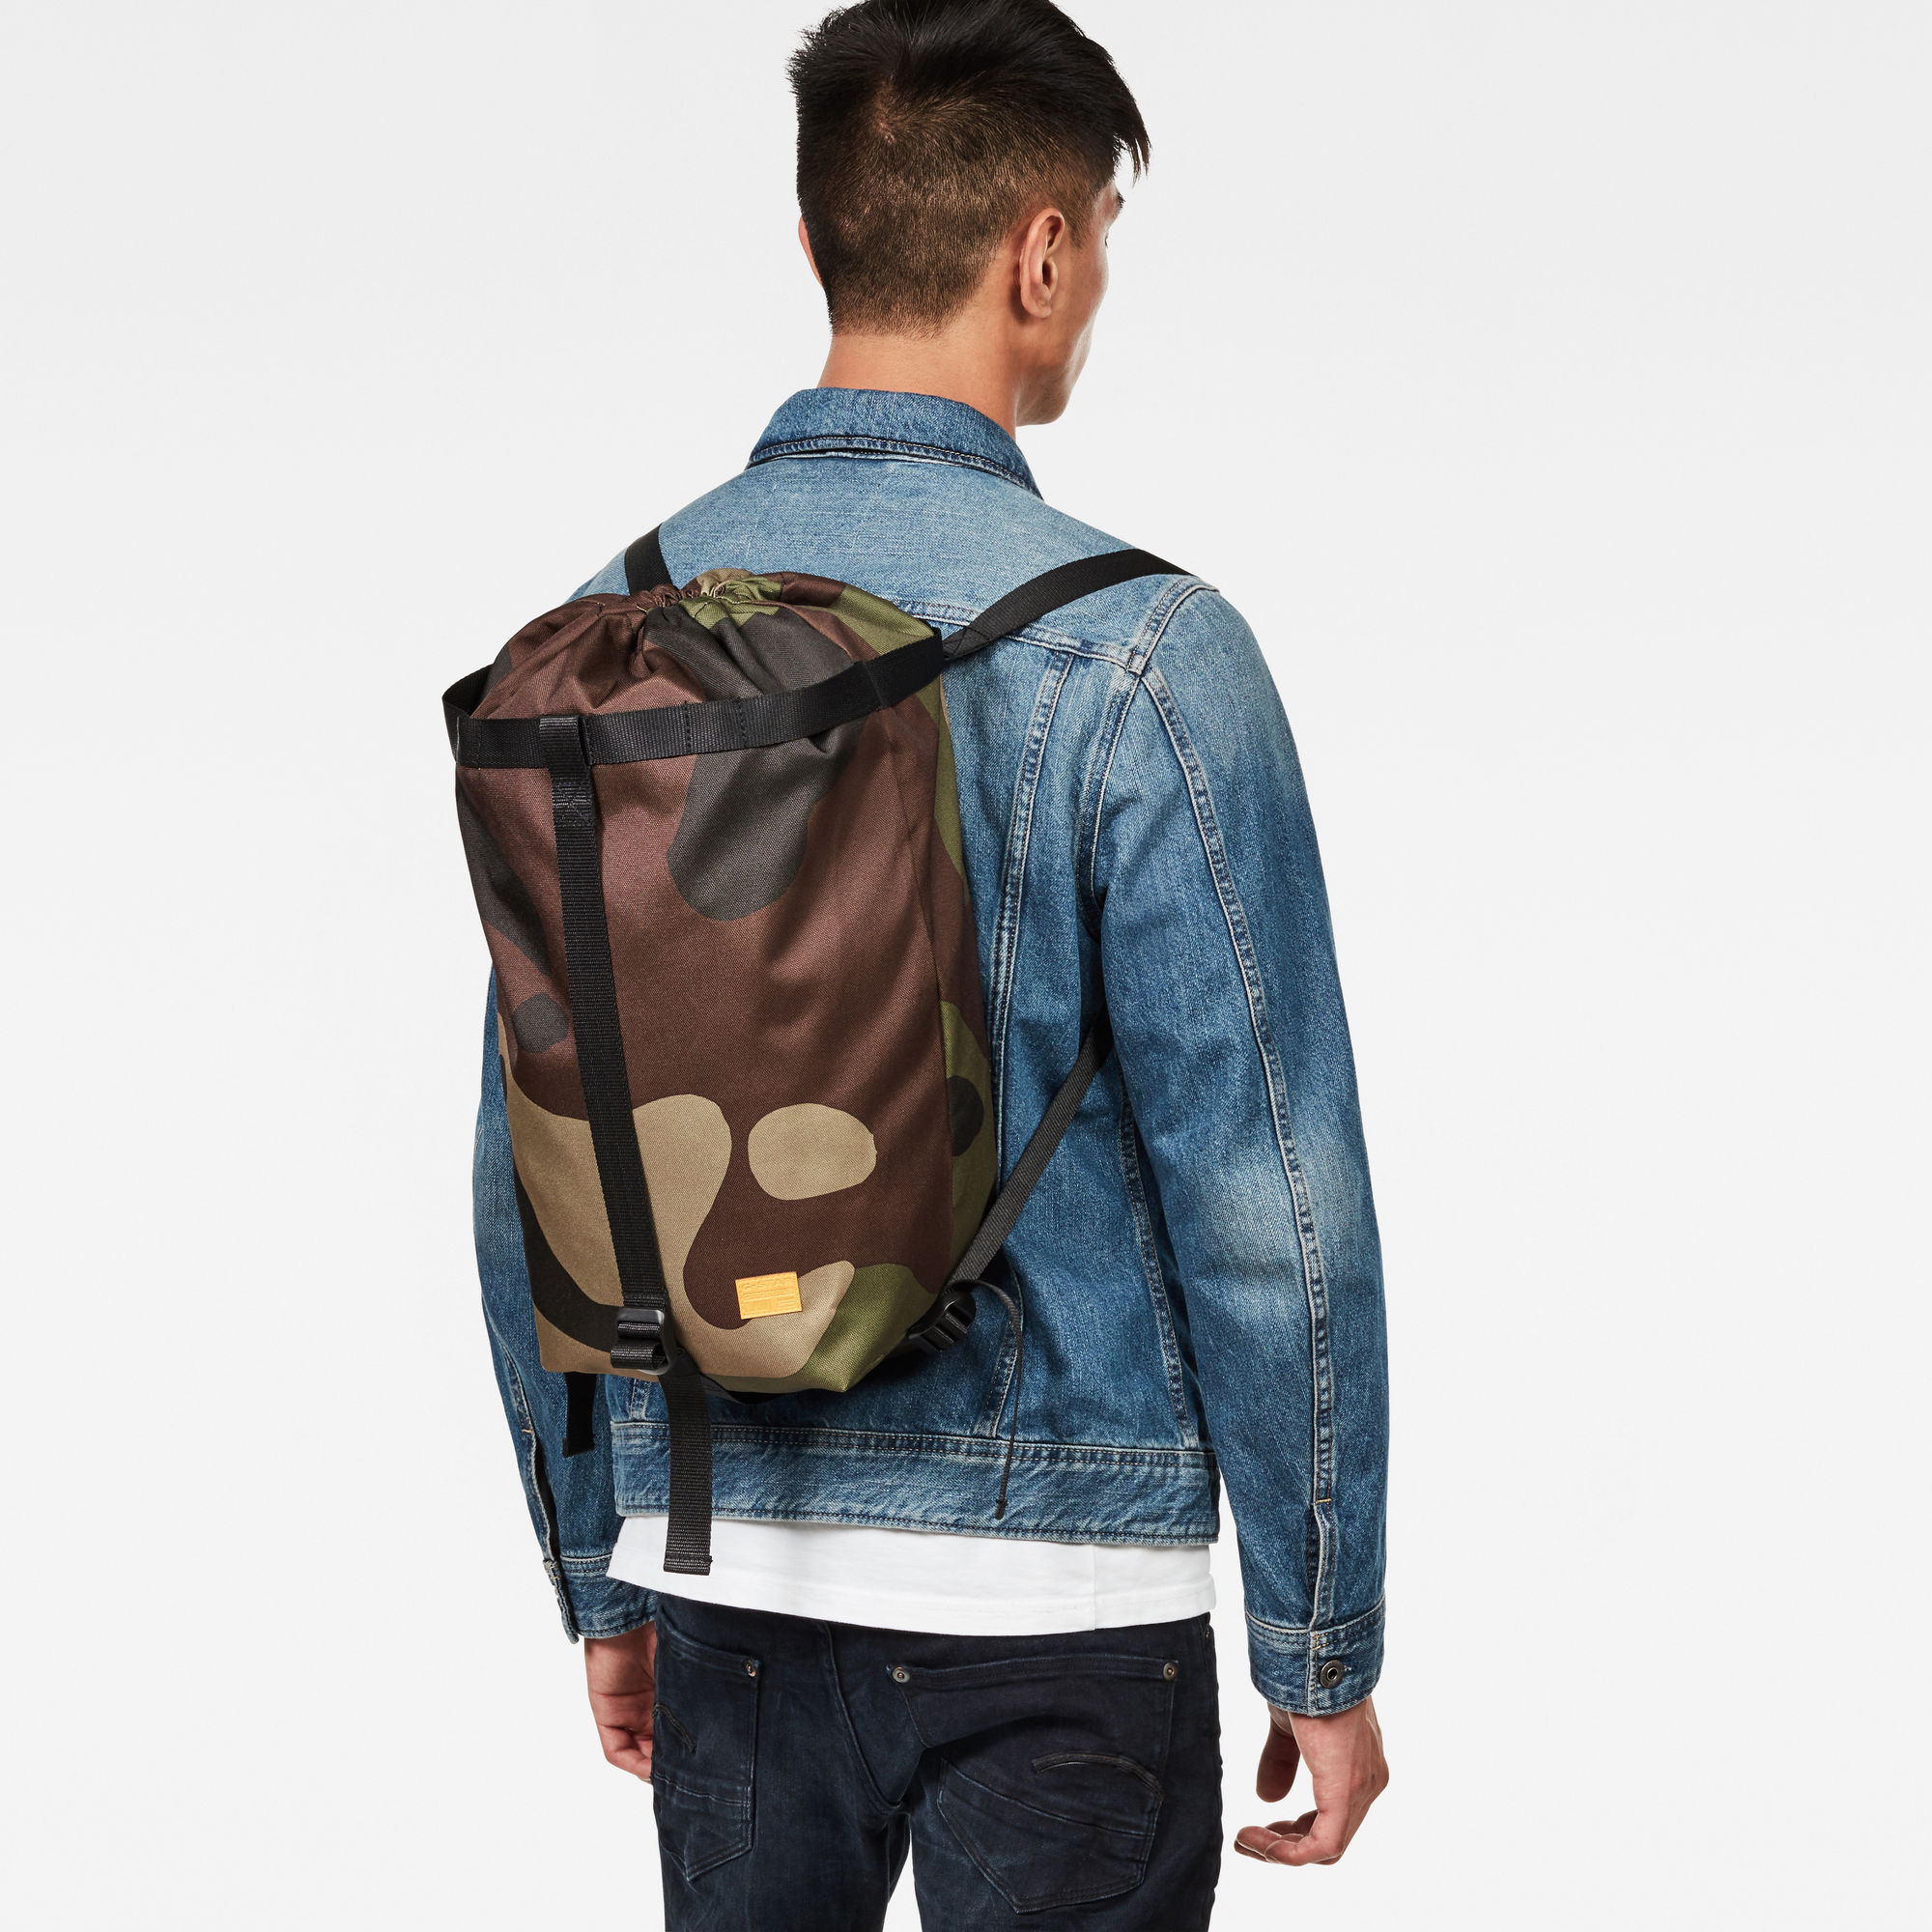 Wysel Patterned Backpack